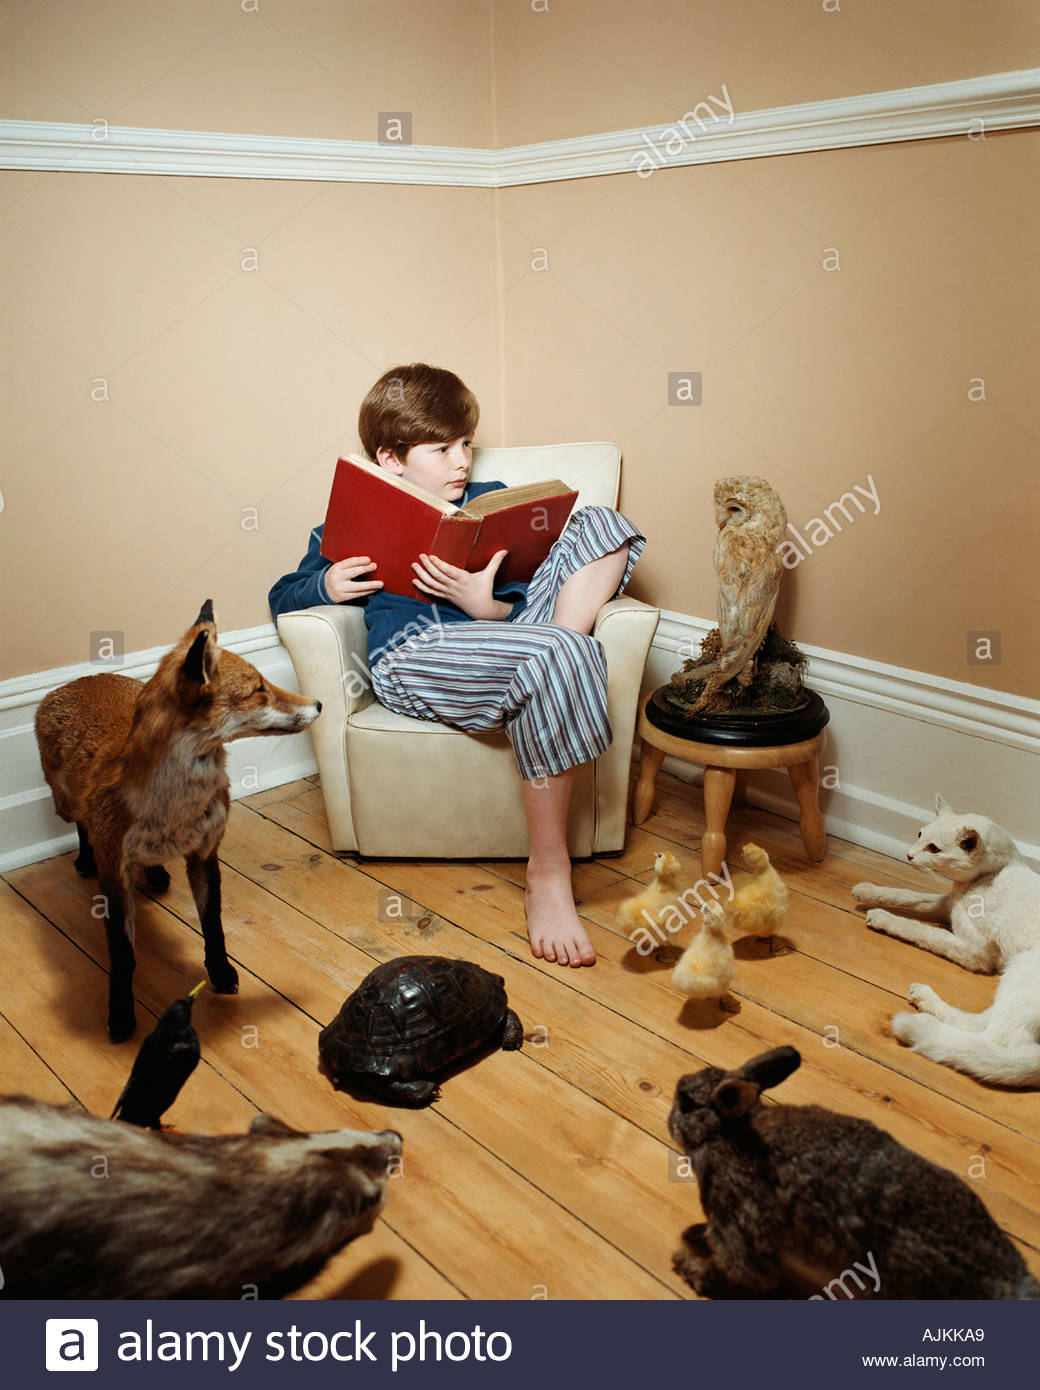 Boy reading a story to stuffed animals - Stock Image